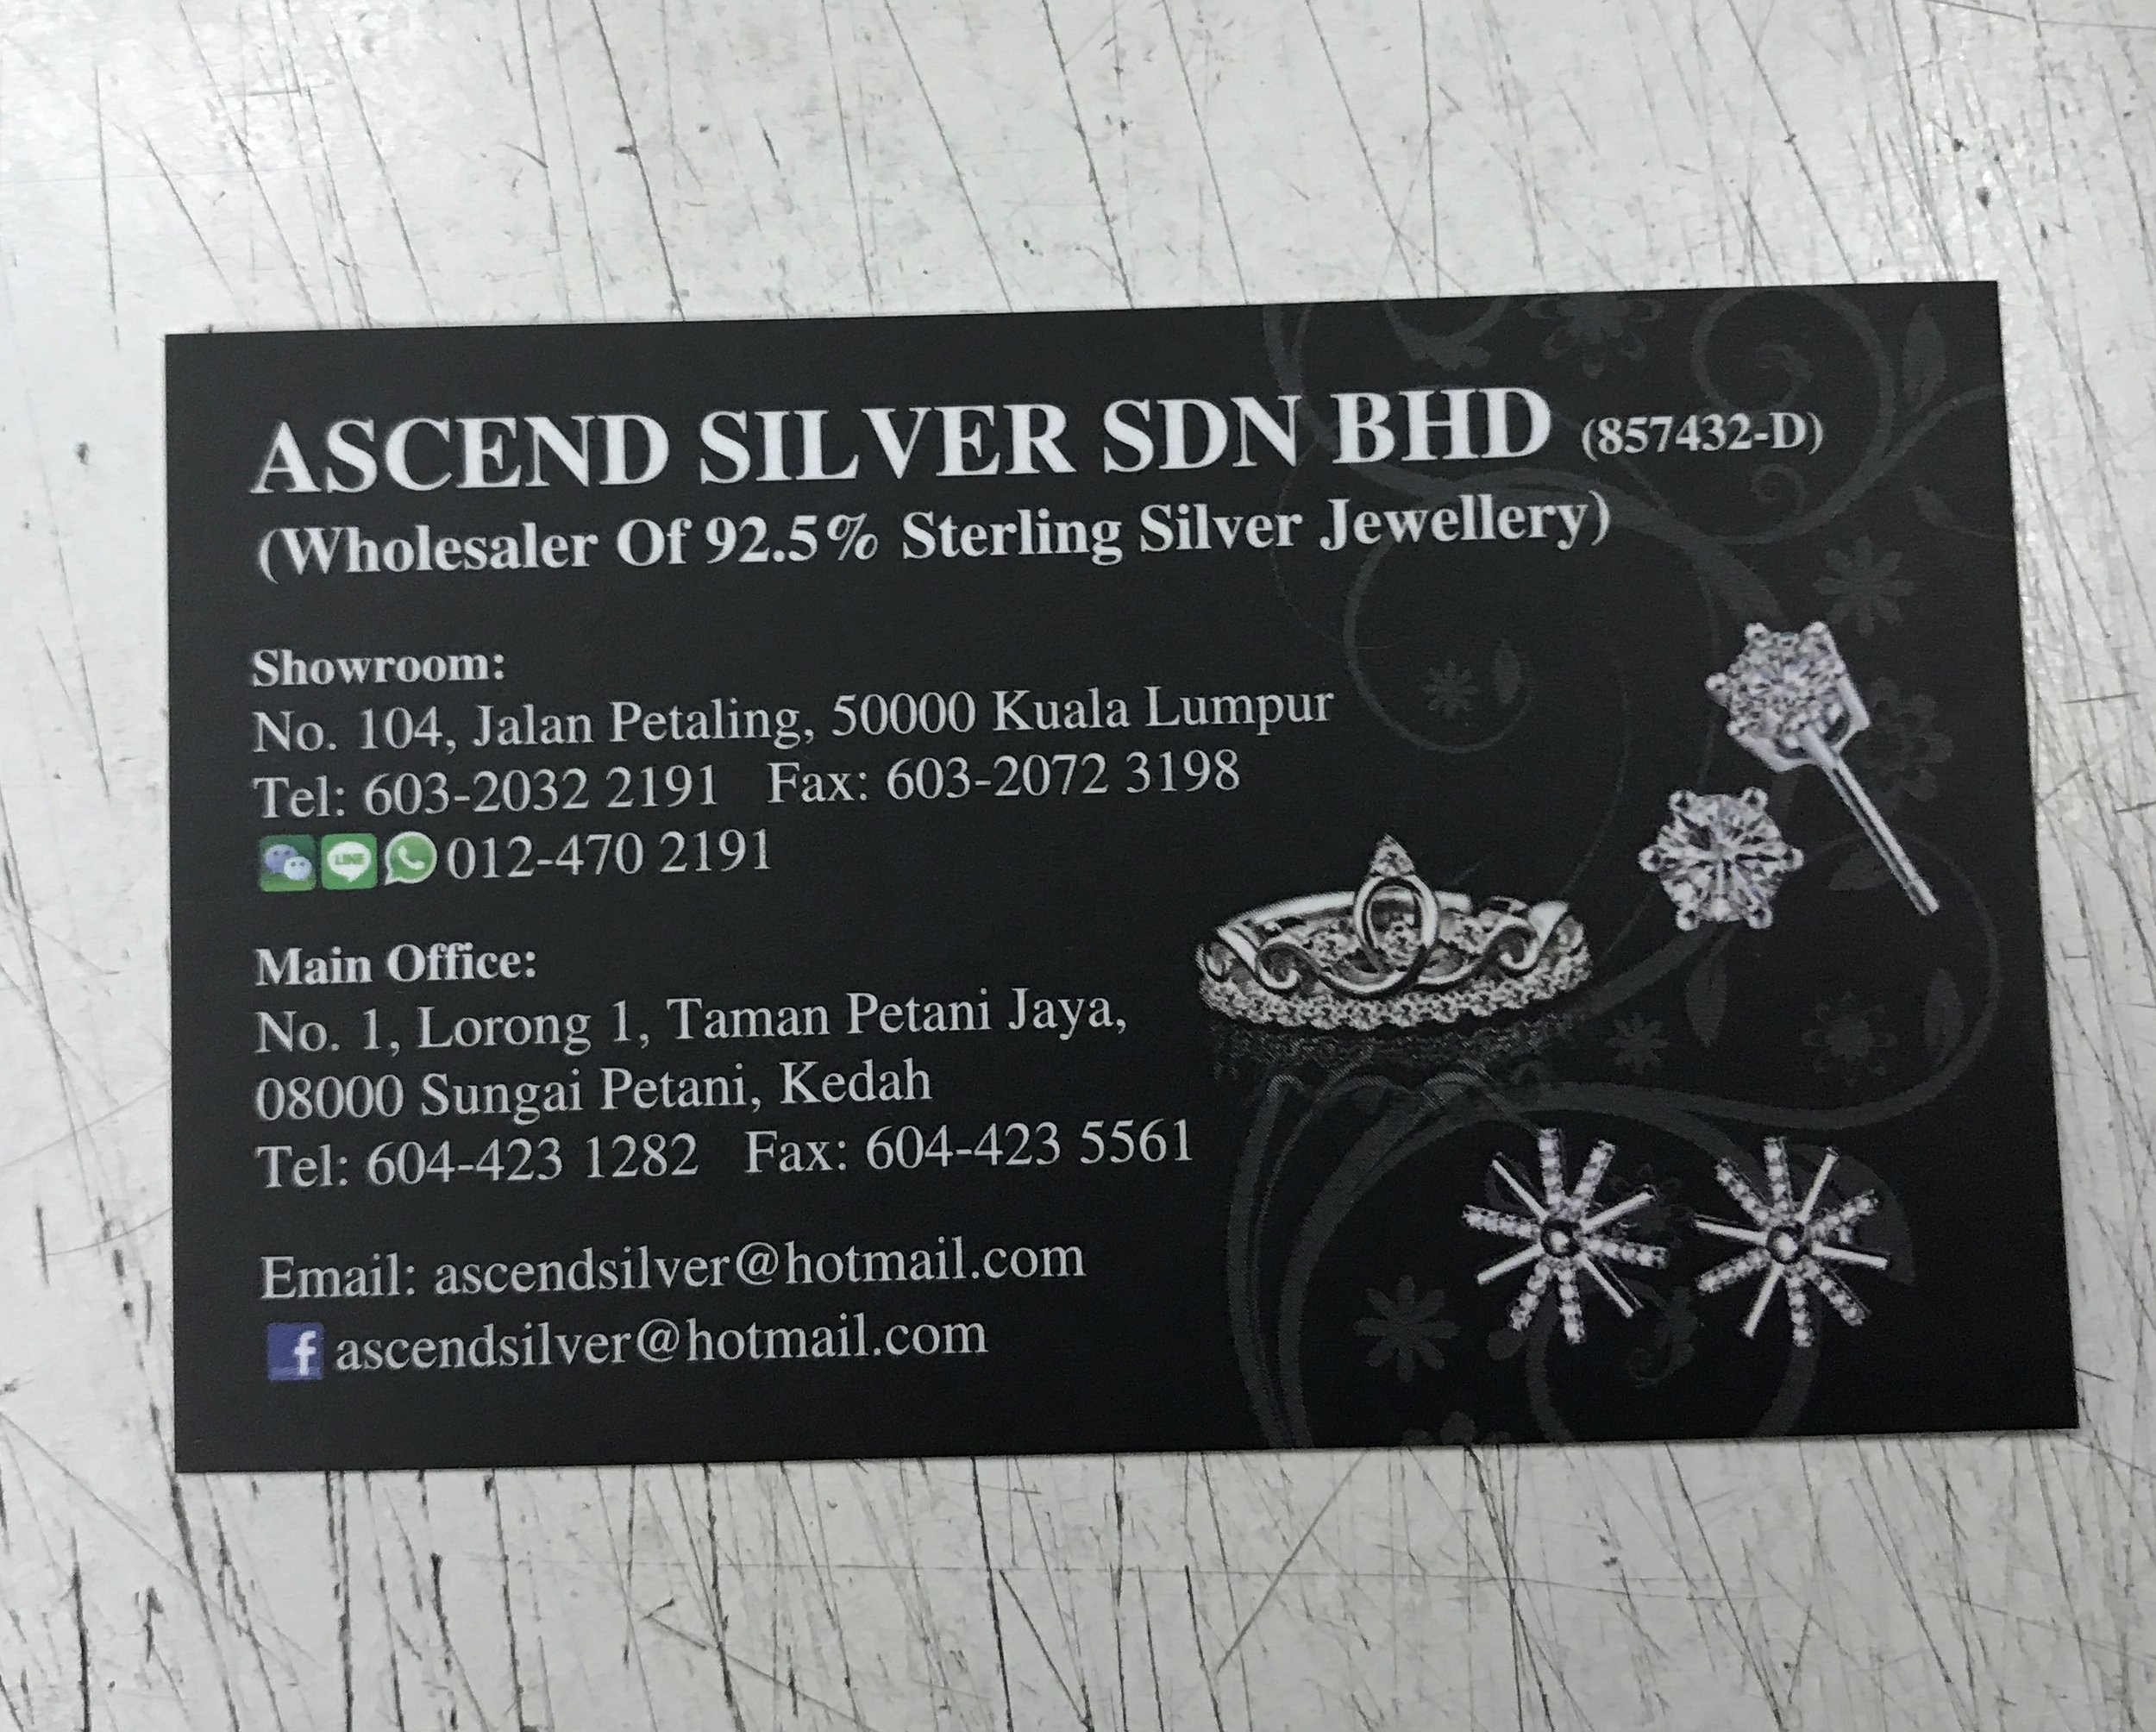 Silver - For your sterling silver finding needs